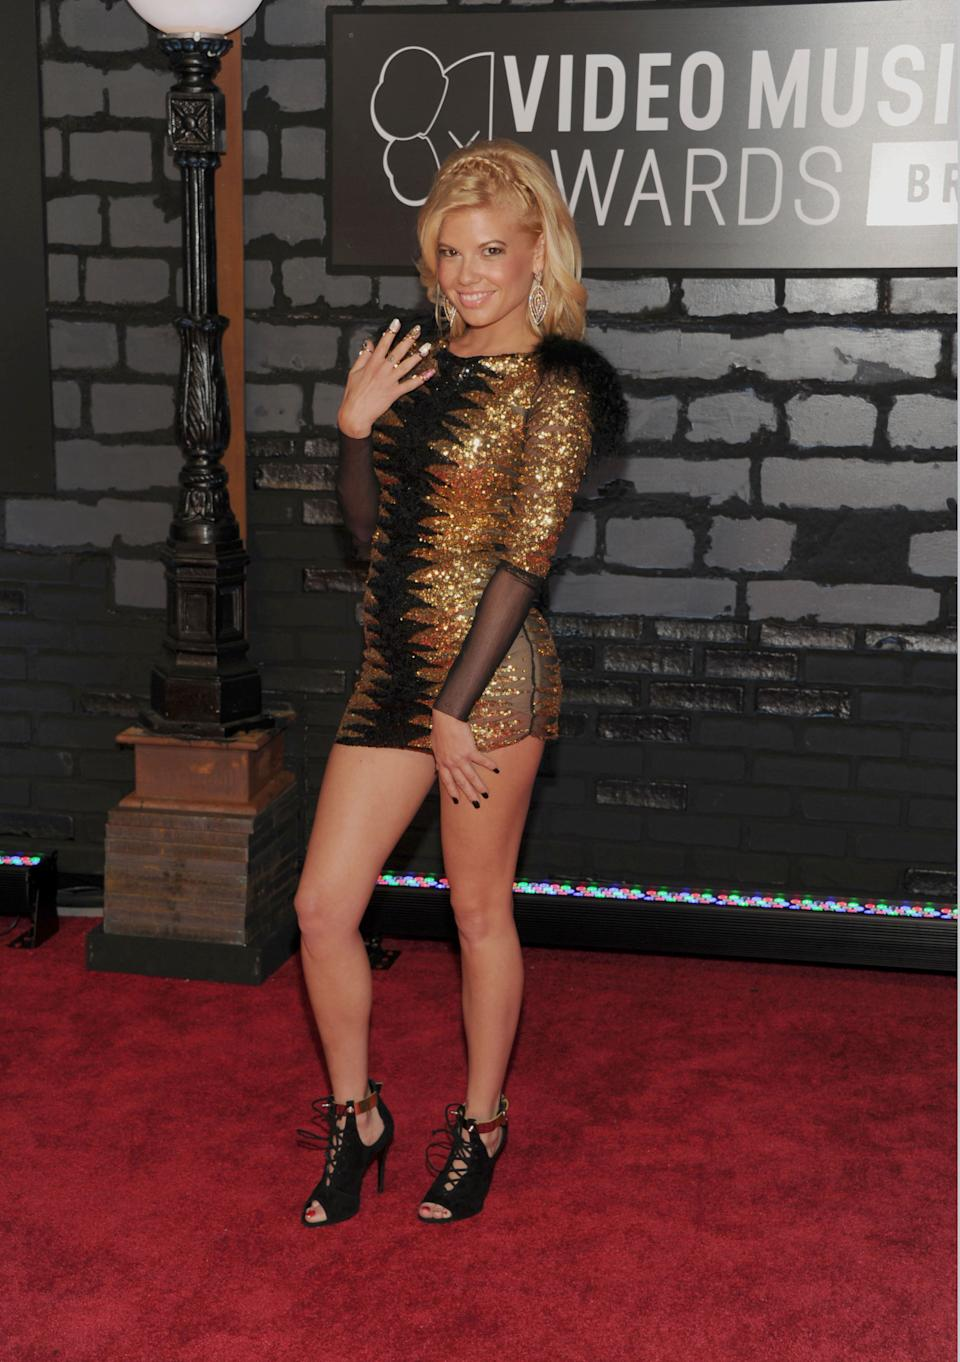 Chanel West Coast arrives at the MTV Video Music Awards on Sunday, Aug. 25, 2013, at the Barclays Center in the Brooklyn borough of New York. (Photo by Evan Agostini/Invision/AP)